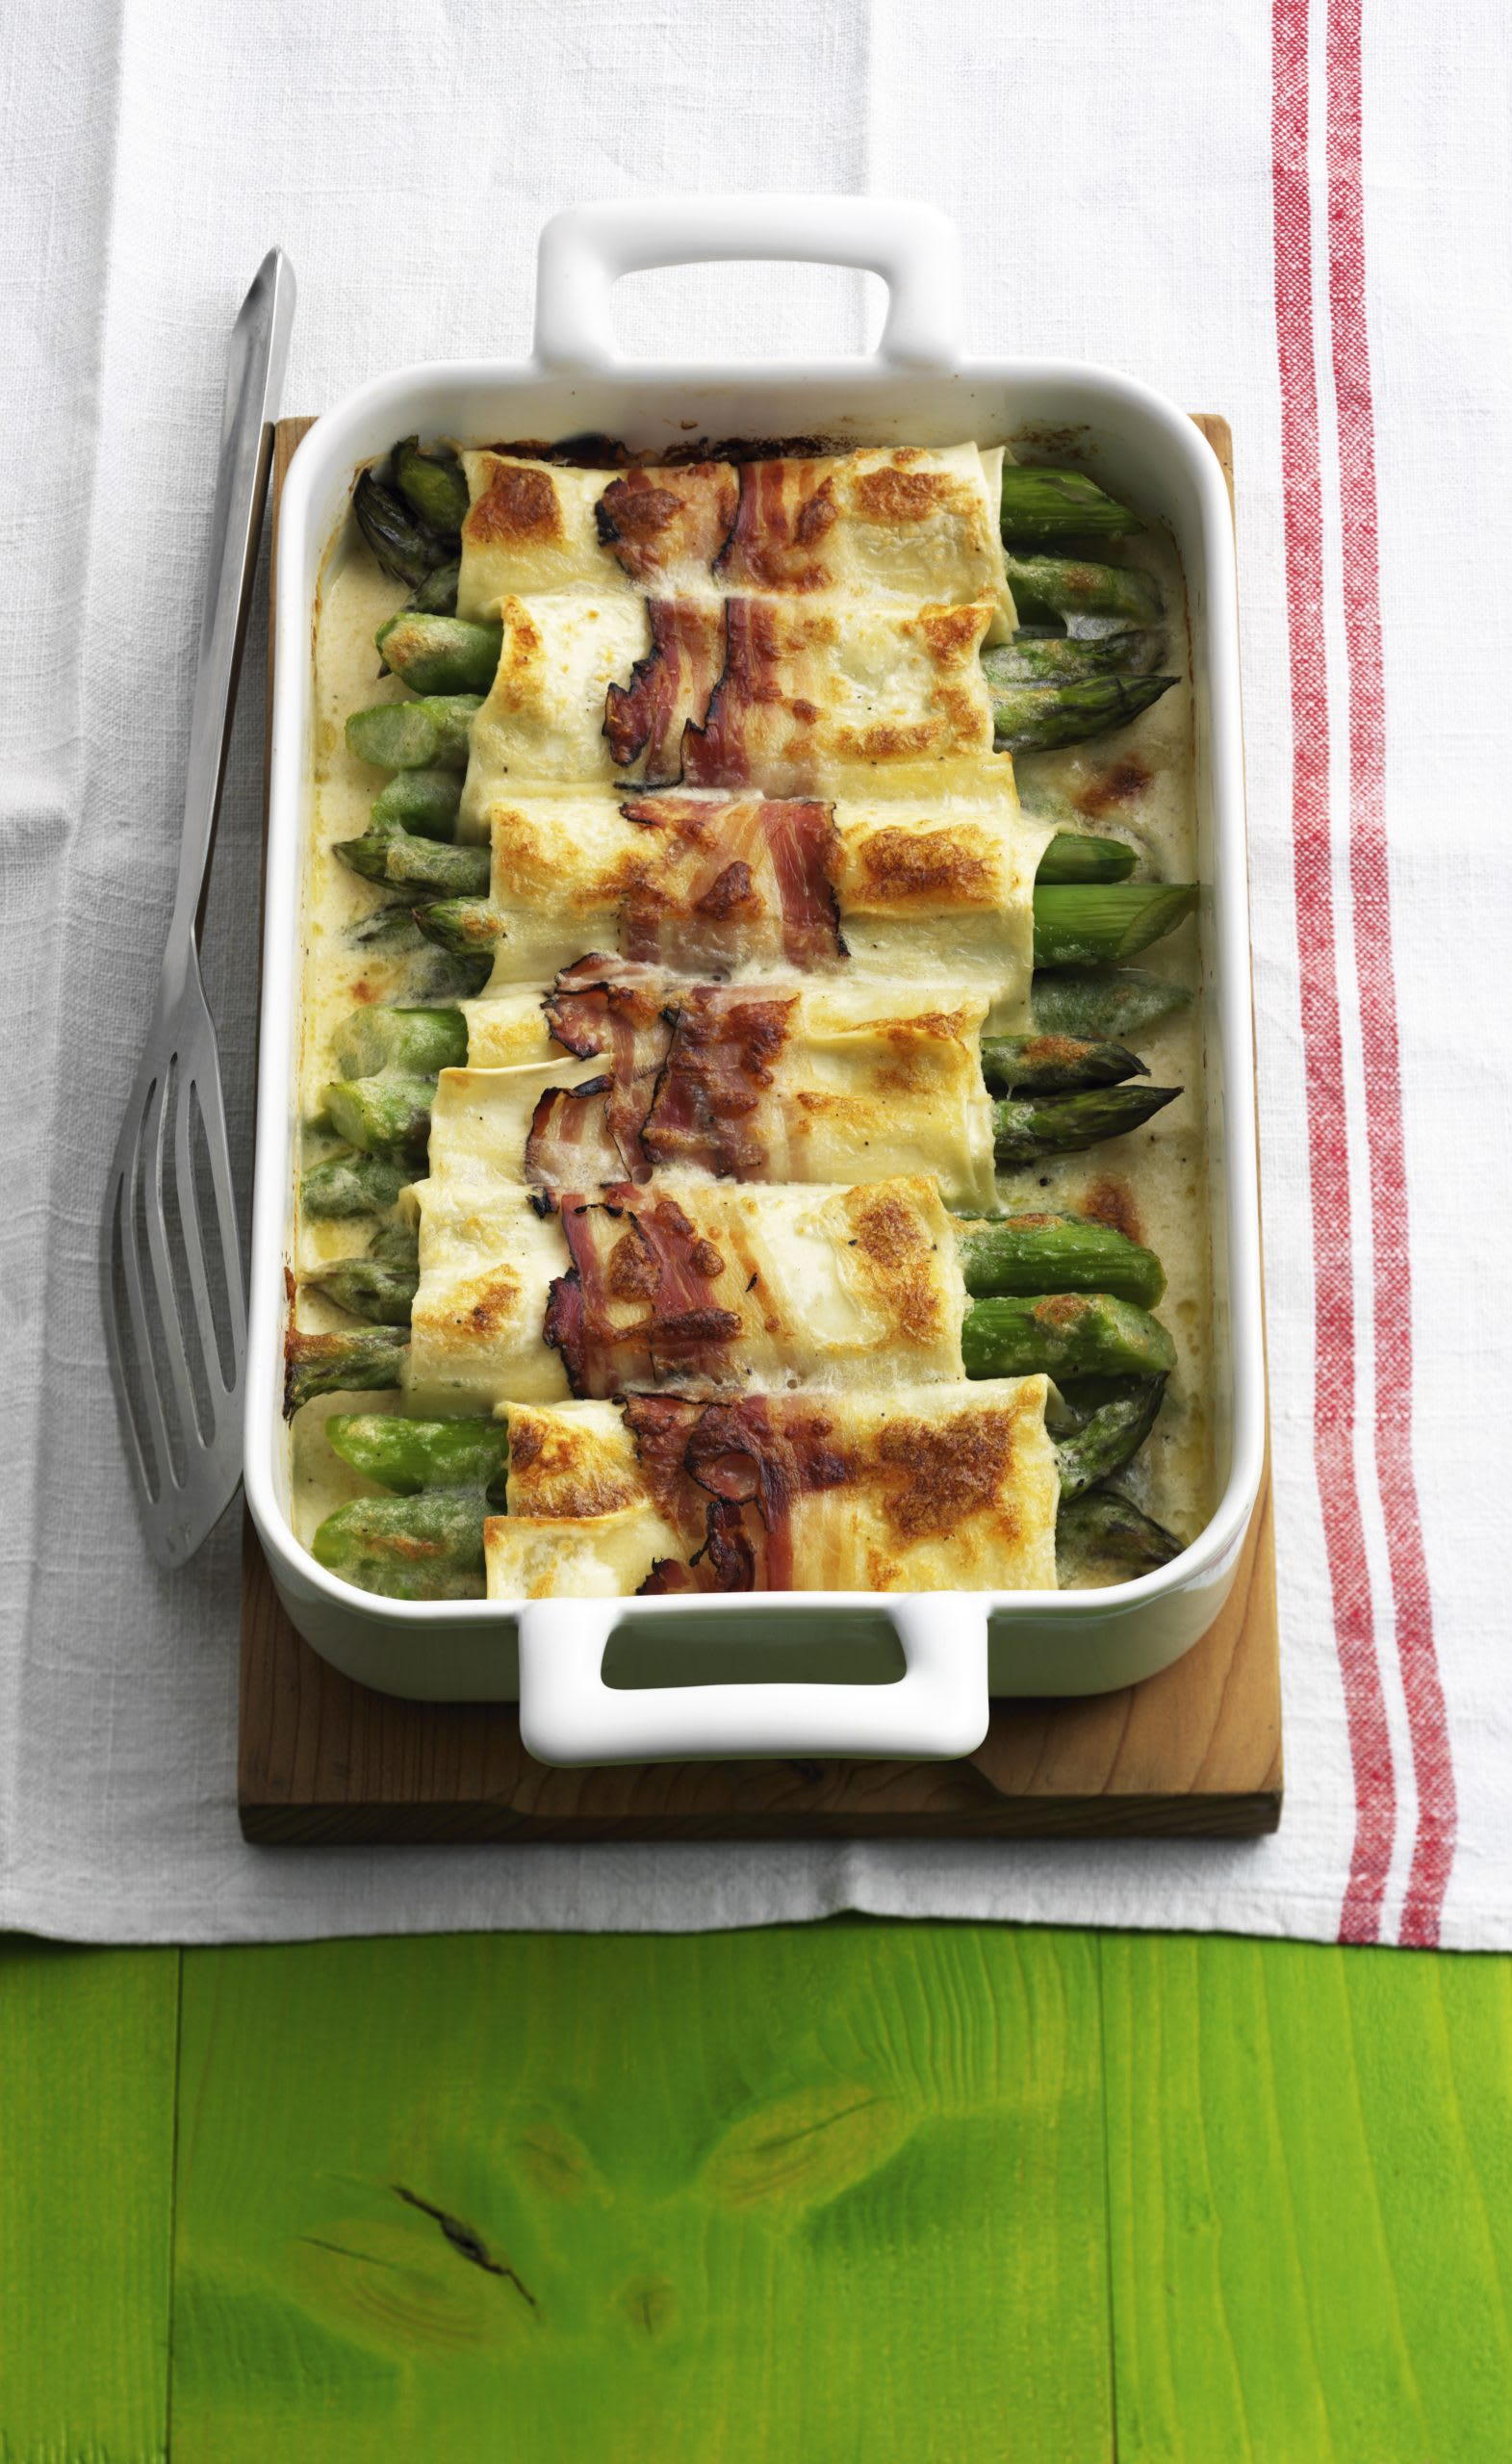 Spargel-Cannelloni mit Speck